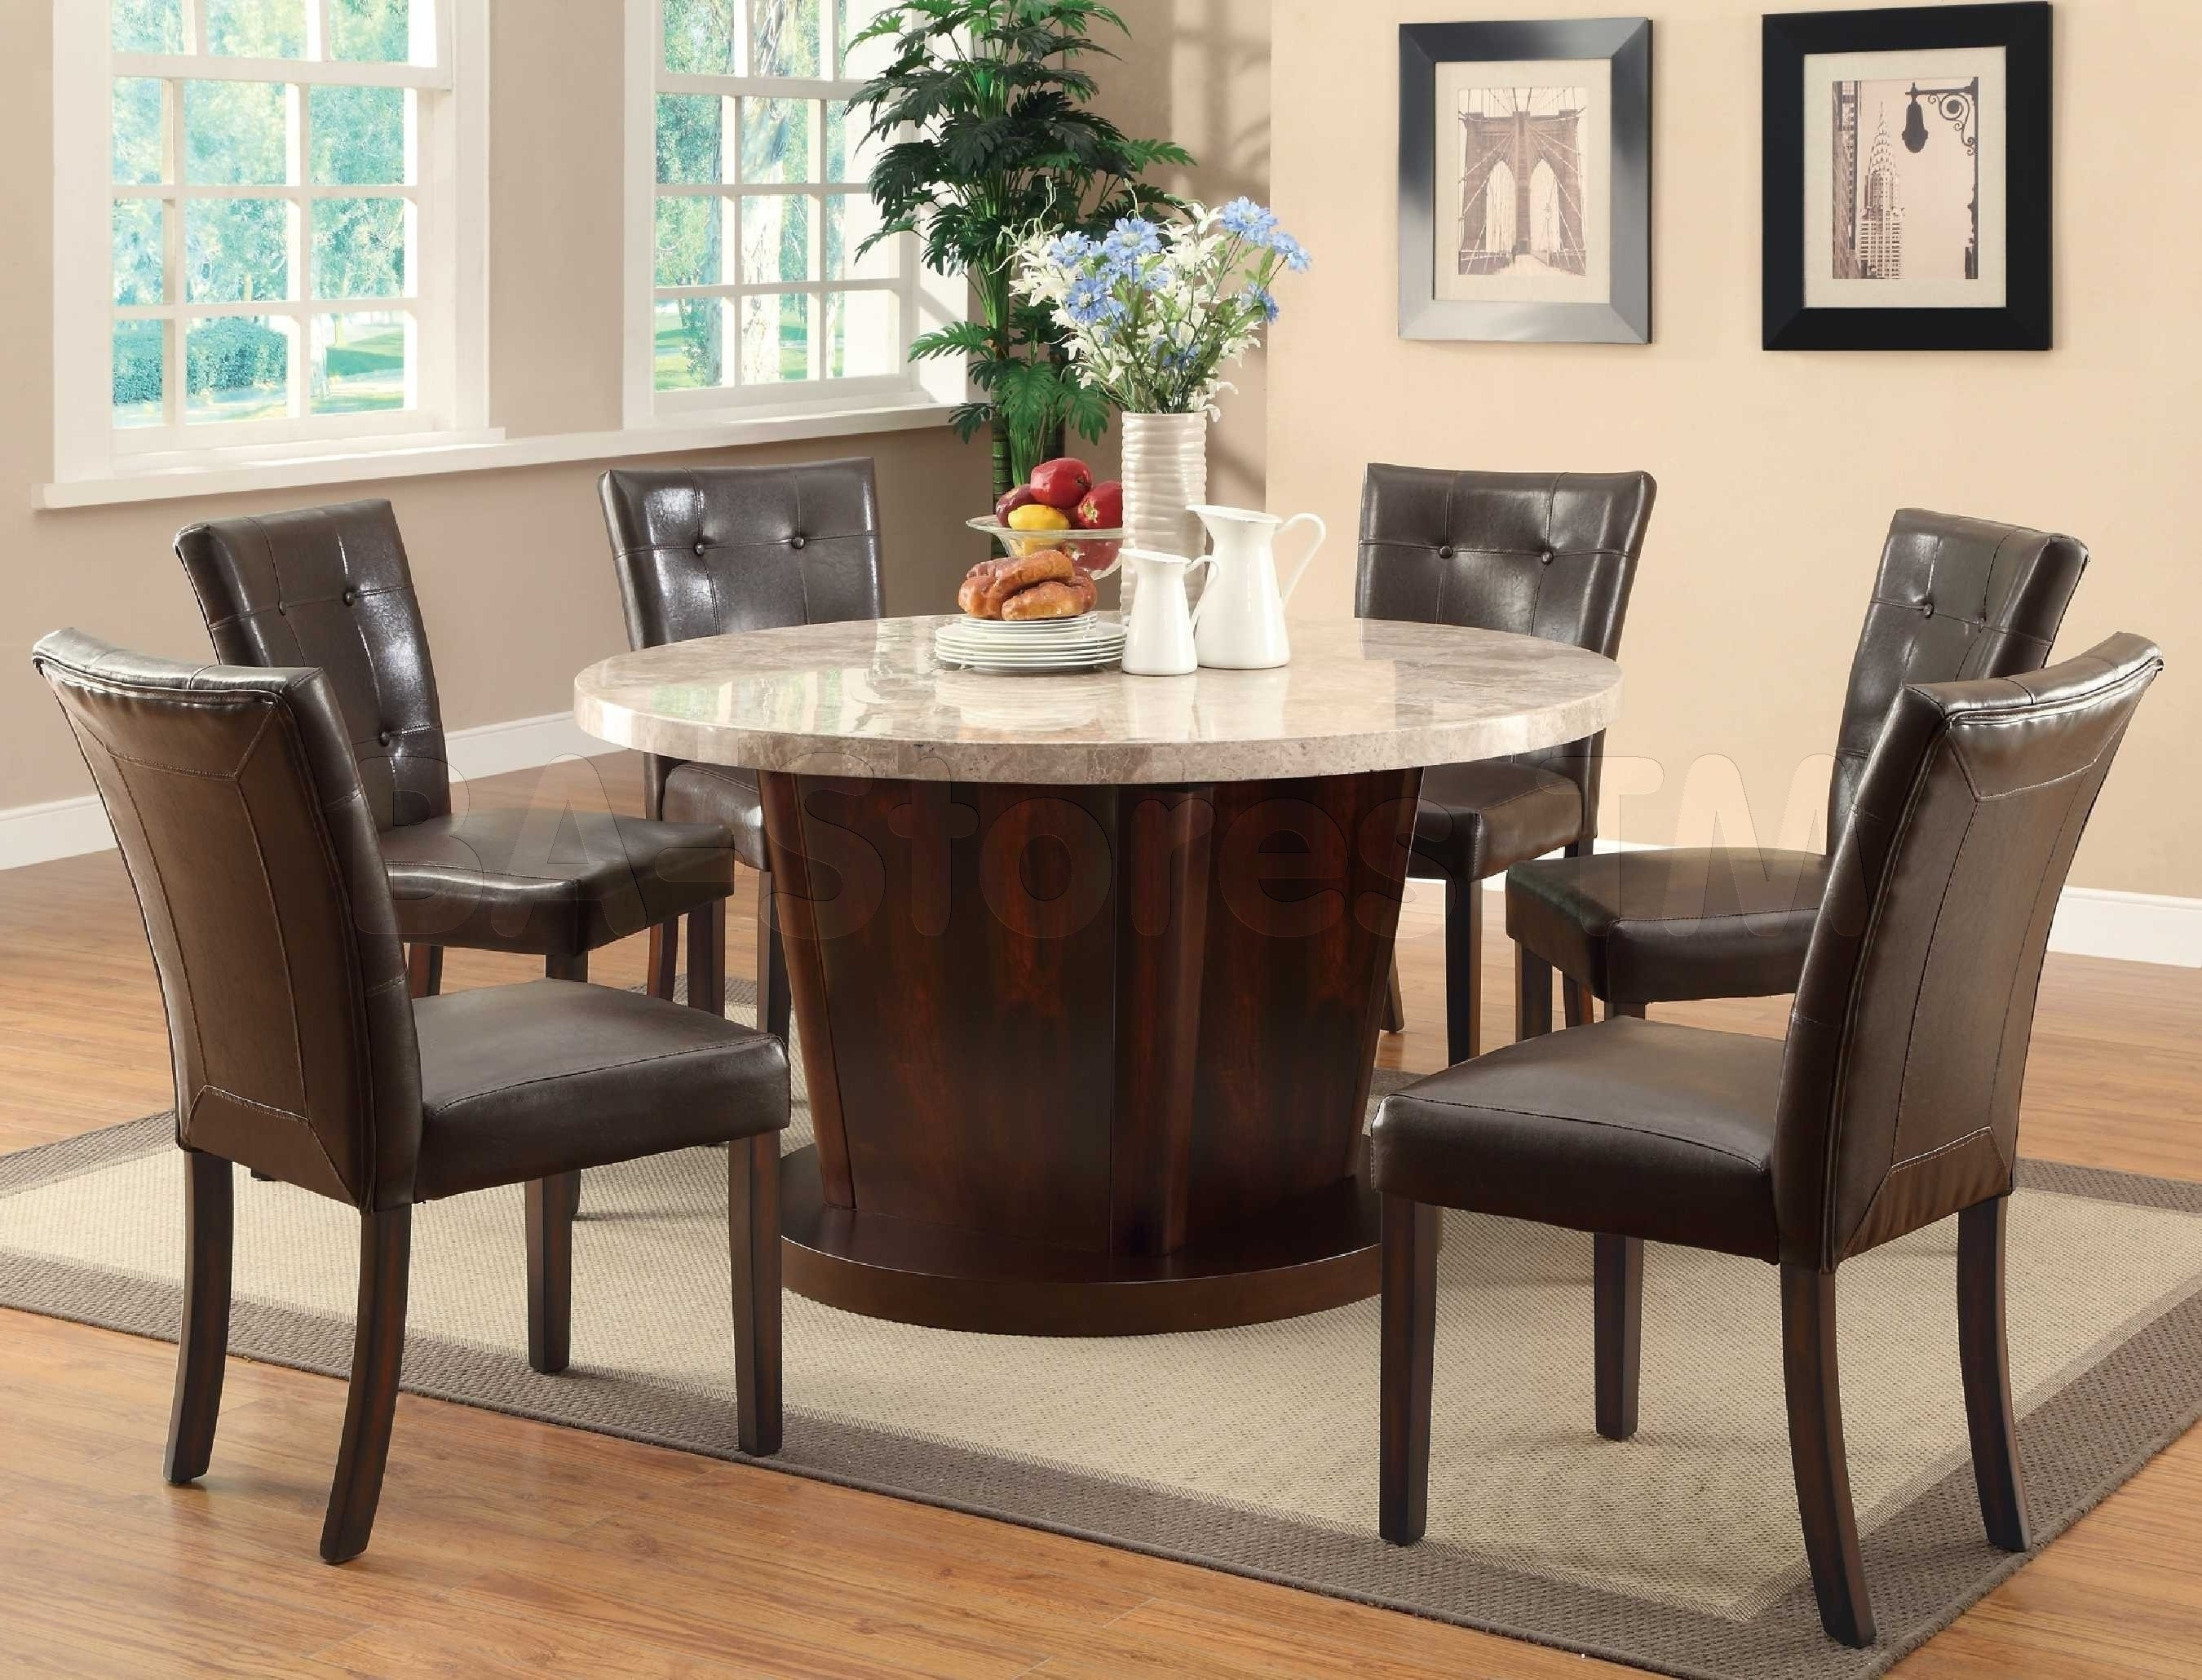 6 Person Round Dining Tables Regarding Most Recent Top 30 Lovely 6 Seater Round Dining Table Dimensions (Gallery 2 of 25)